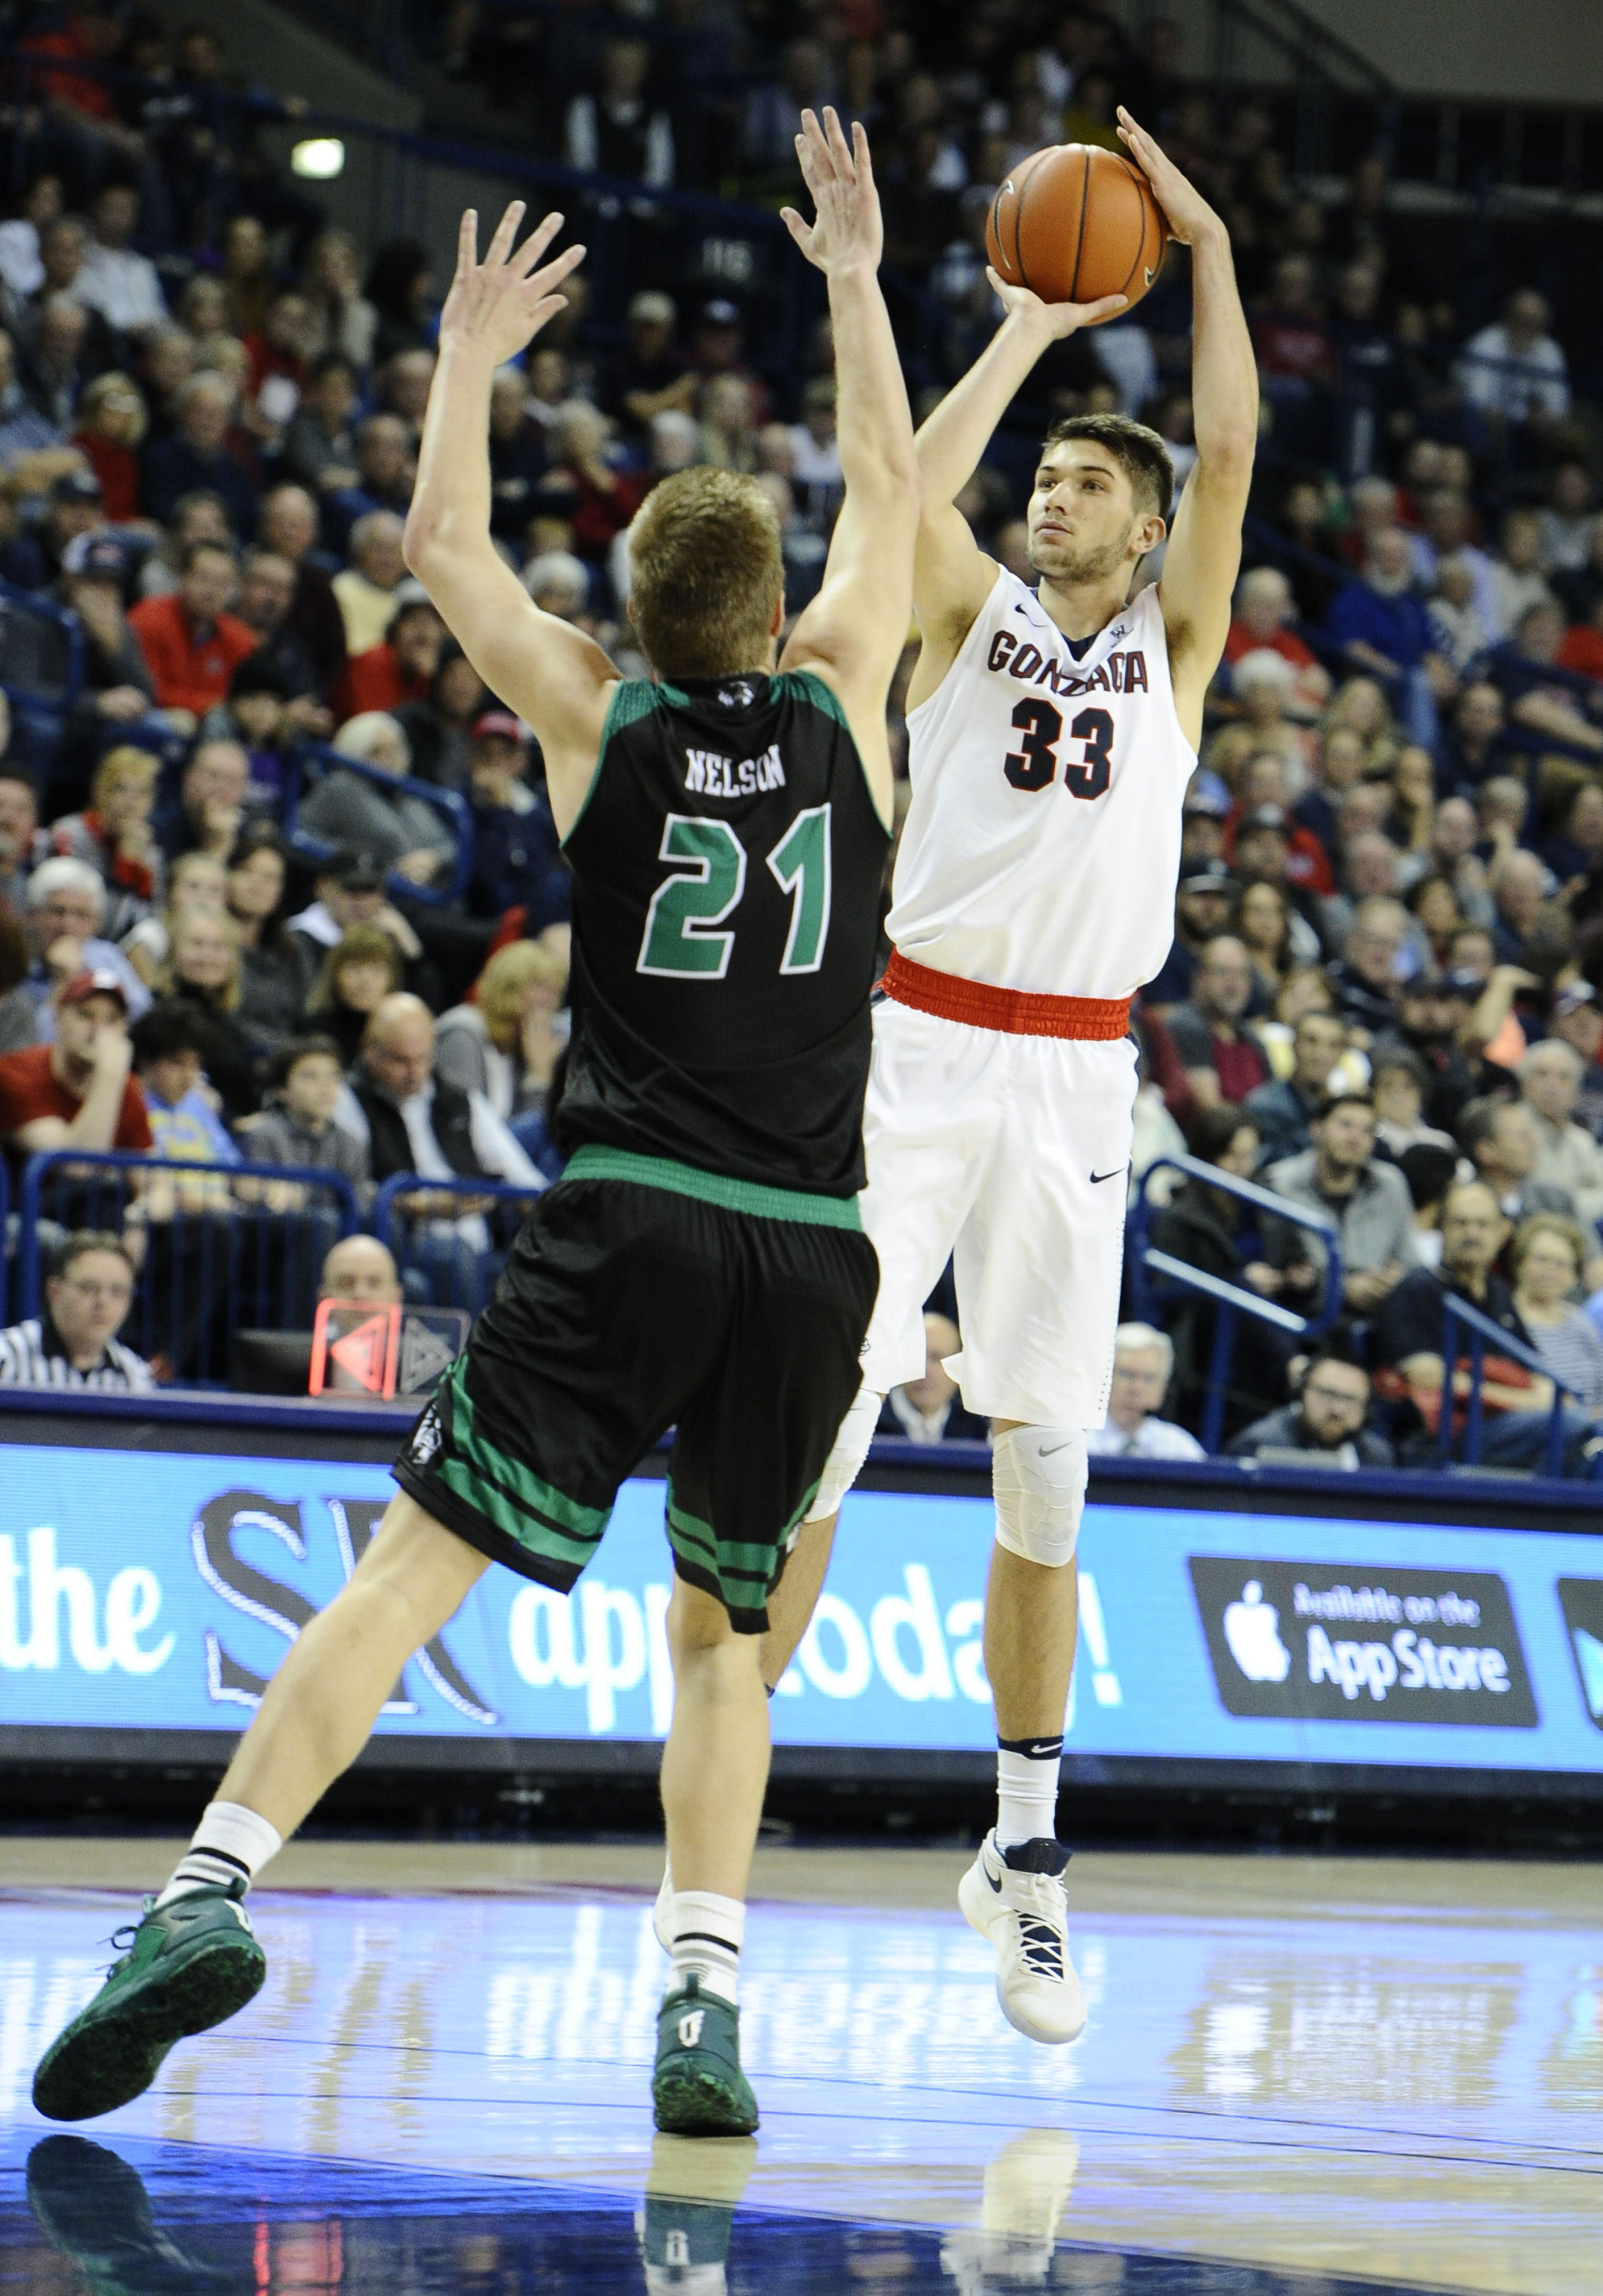 mbb television schedule announced - gonzaga university athletics